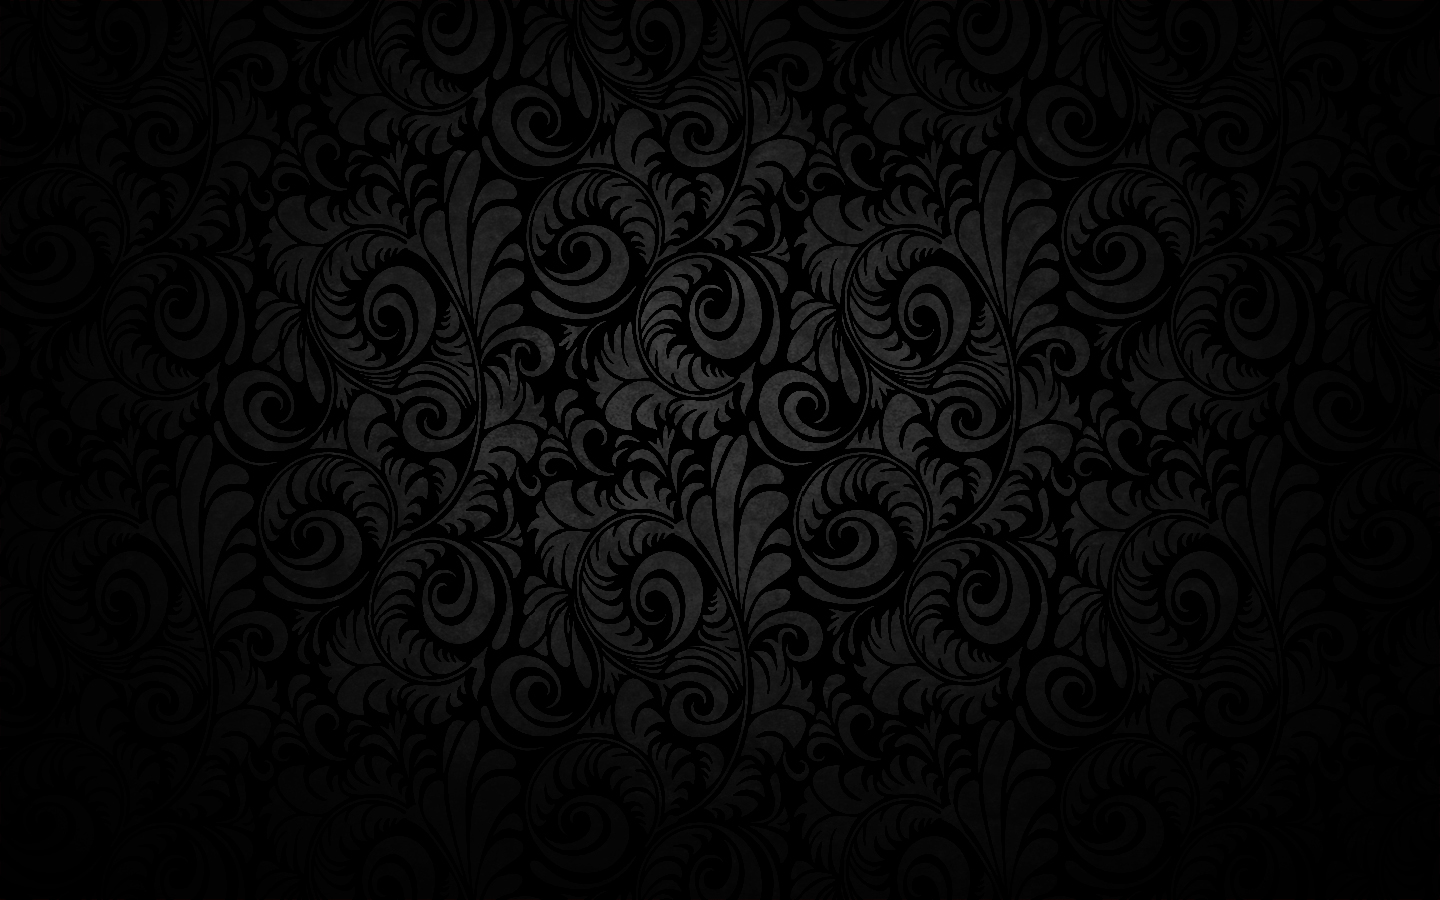 Black Gray Wallpaper in a Dark Style